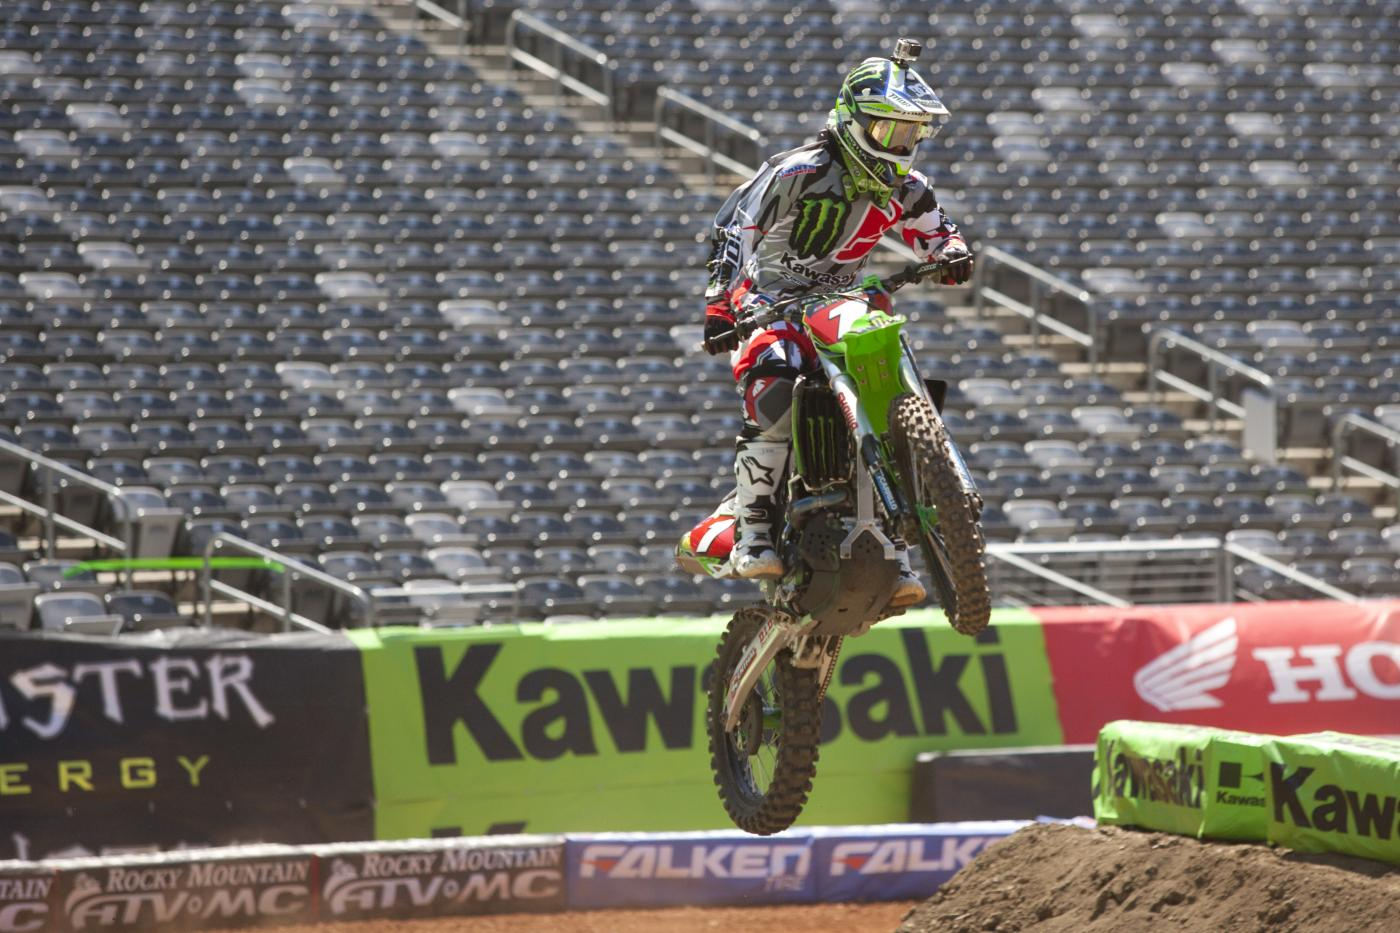 Ryan Villopoto looks to clinch his fourth straight SX title Saturday.  Photo: Jordan Roberts